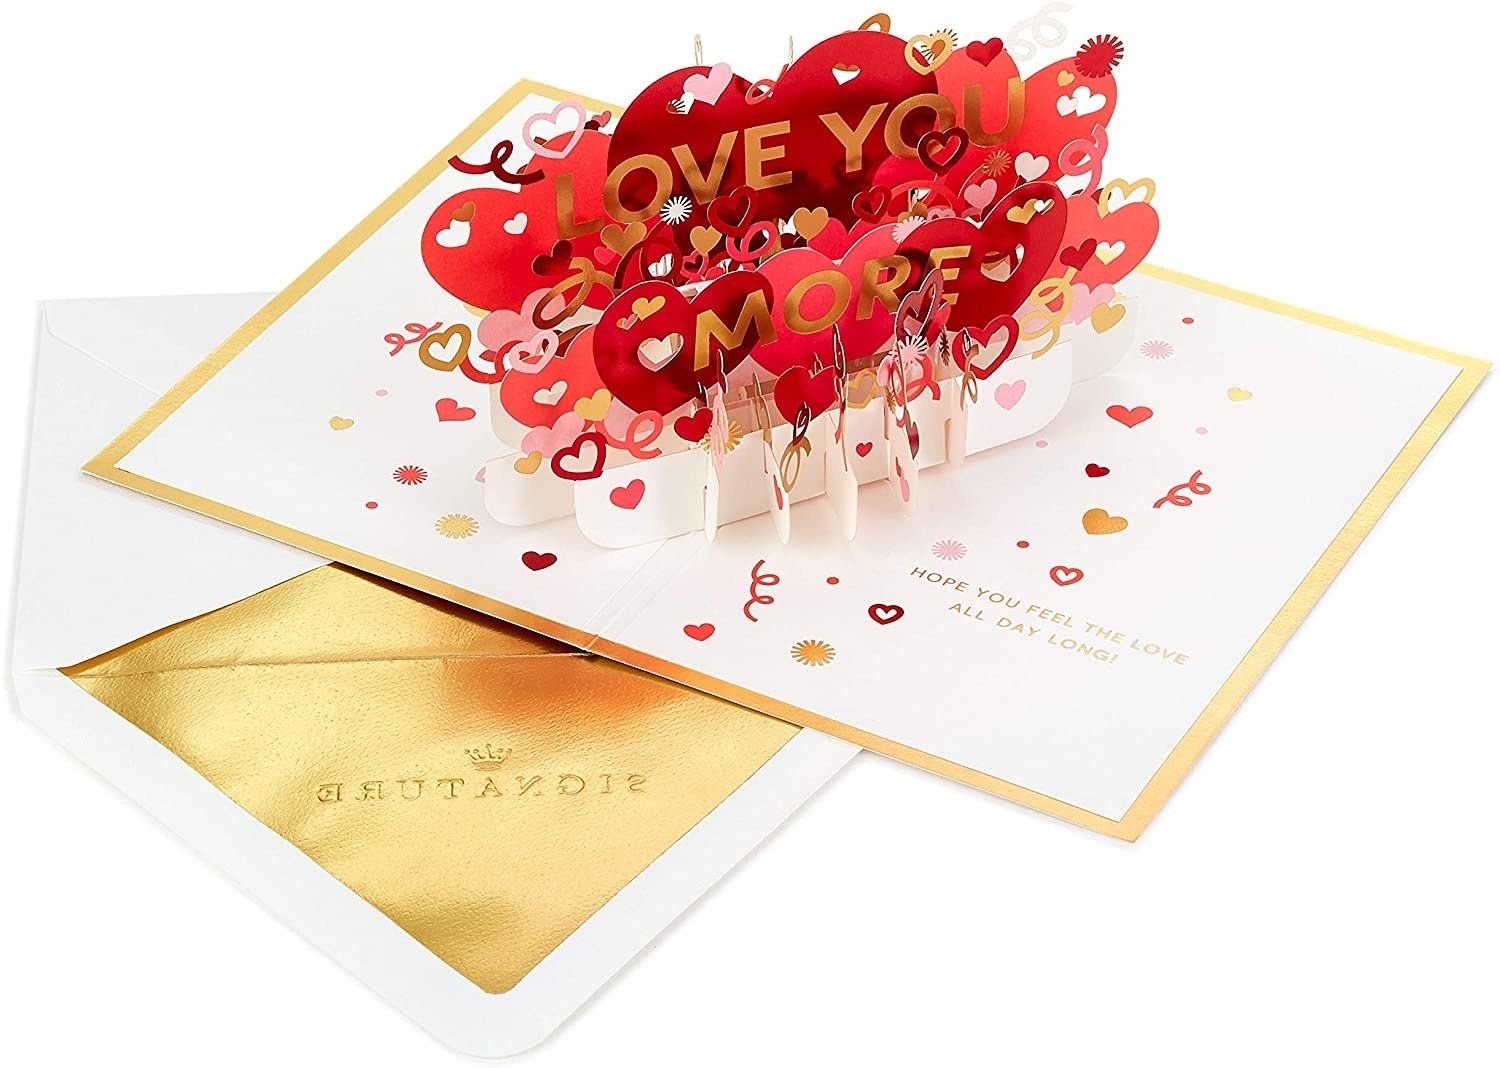 a card with a pop-up of the saying love you more